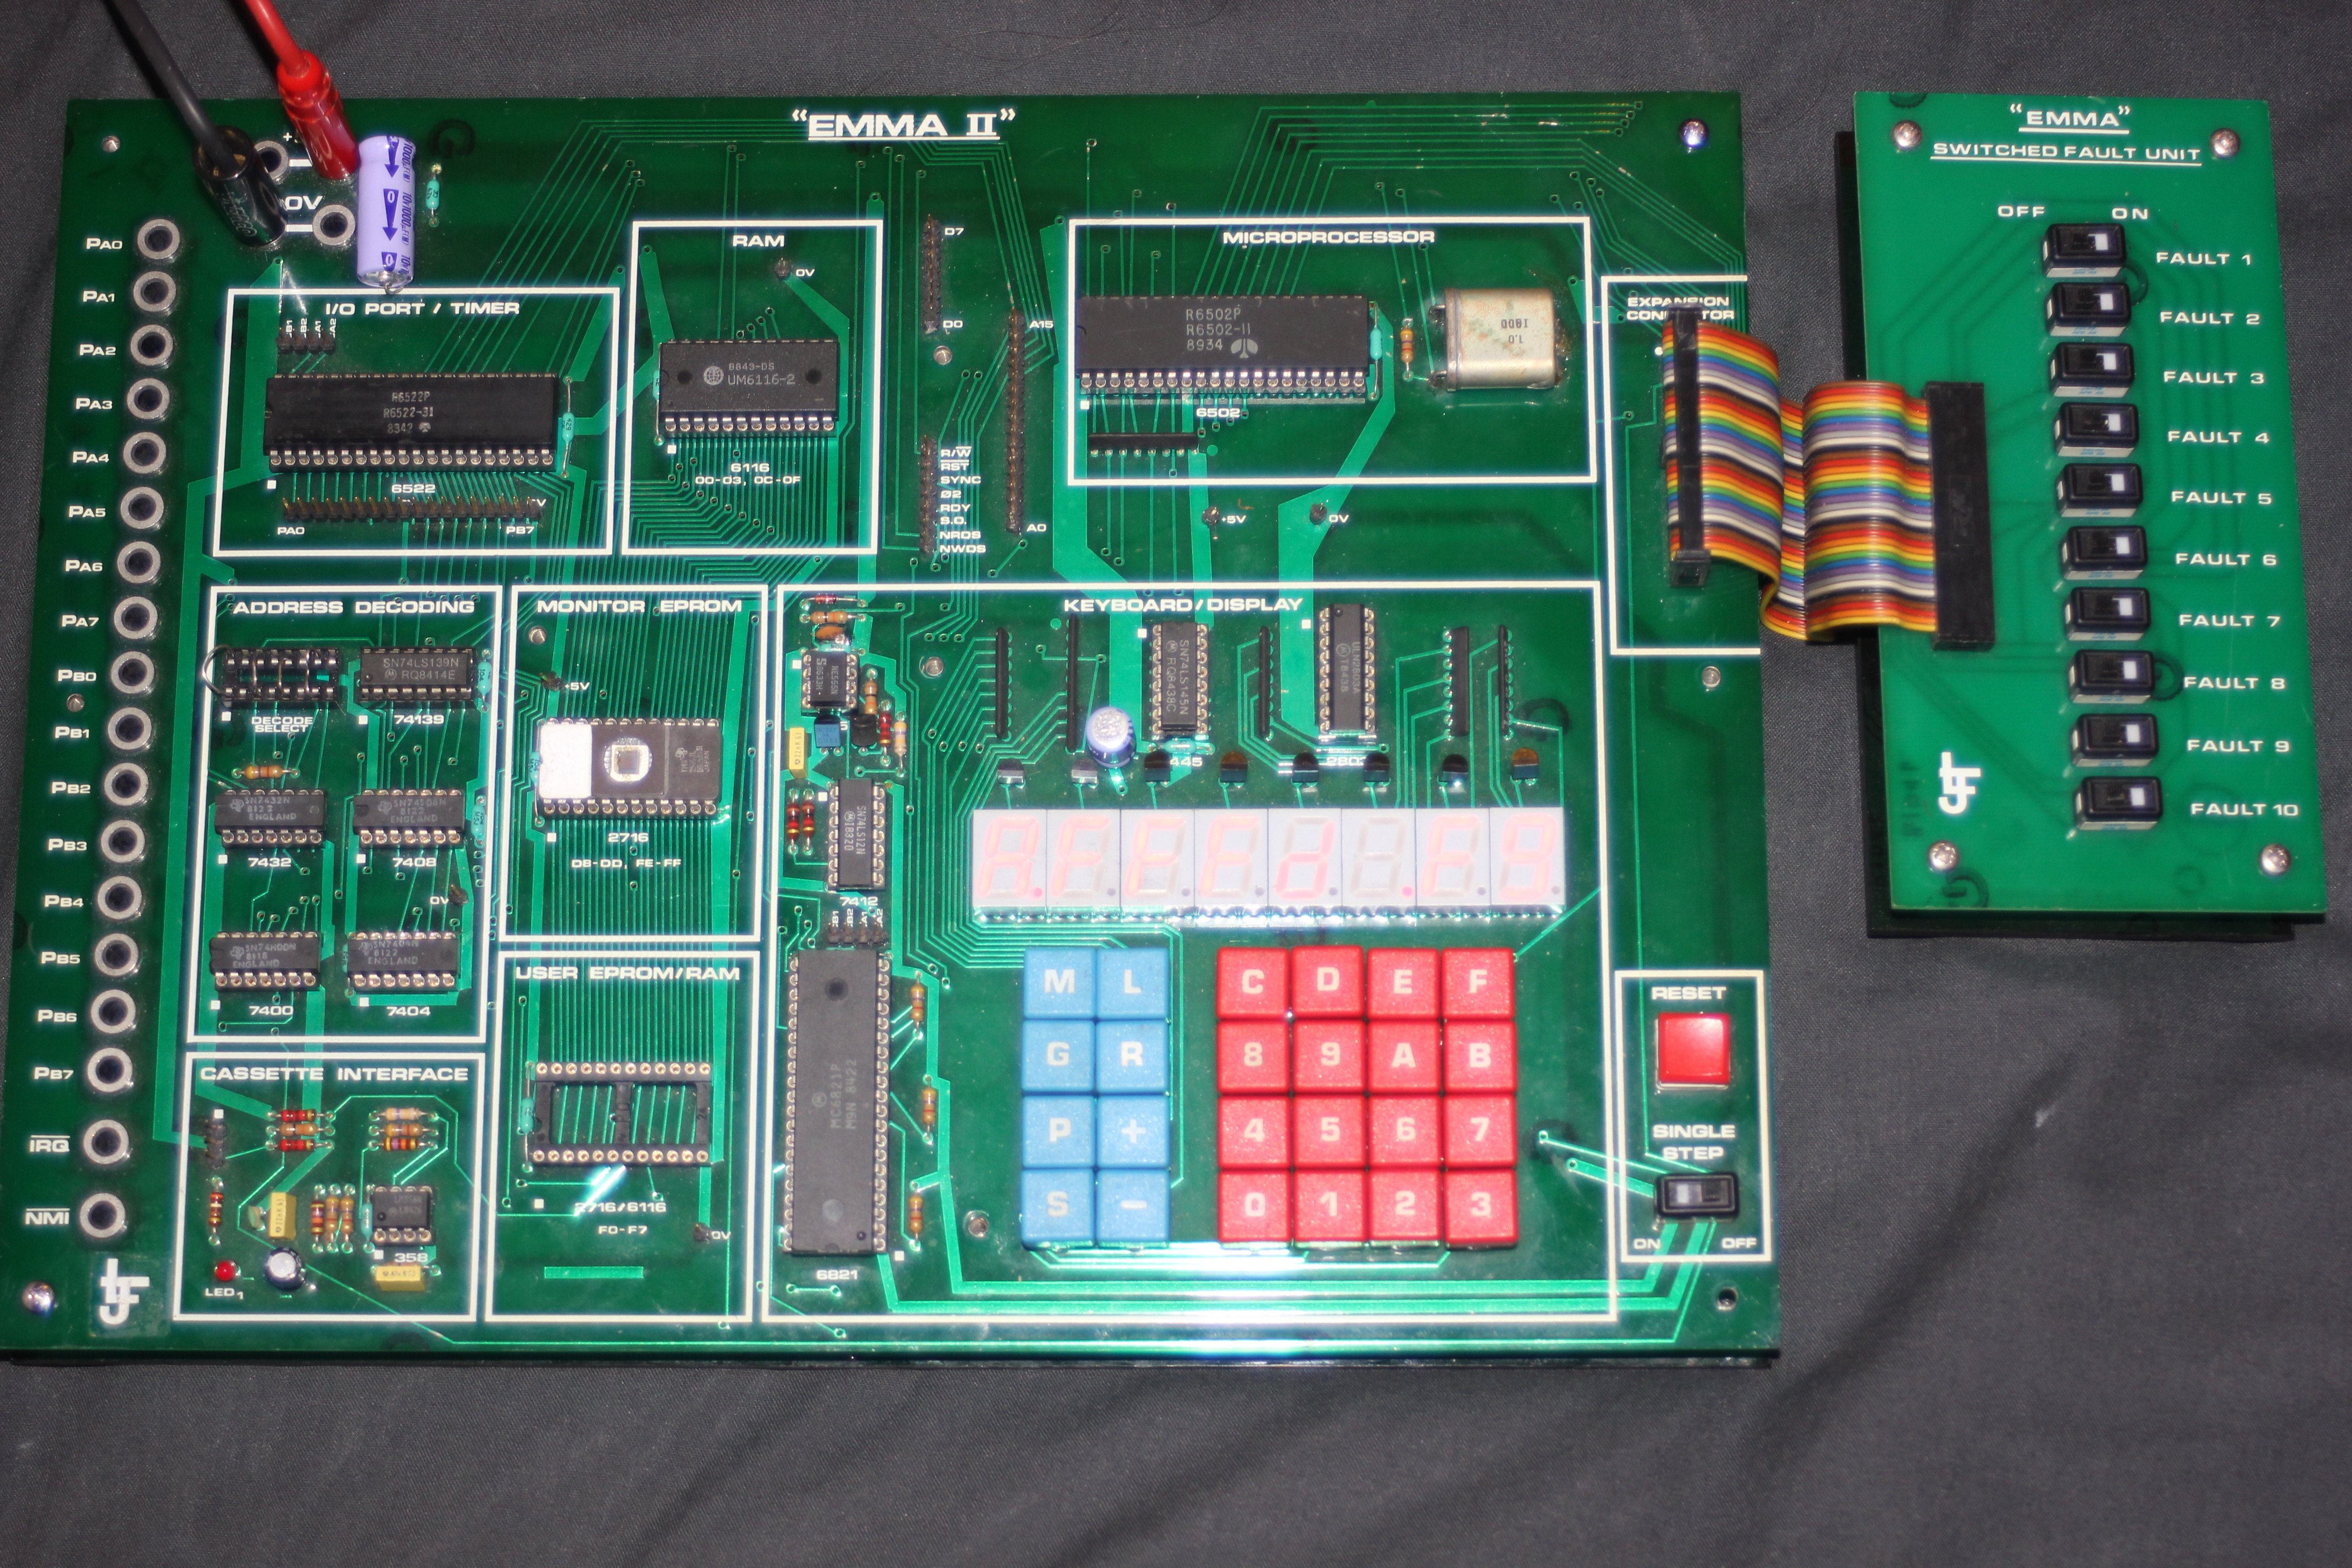 EMMA II 6502 Development Board